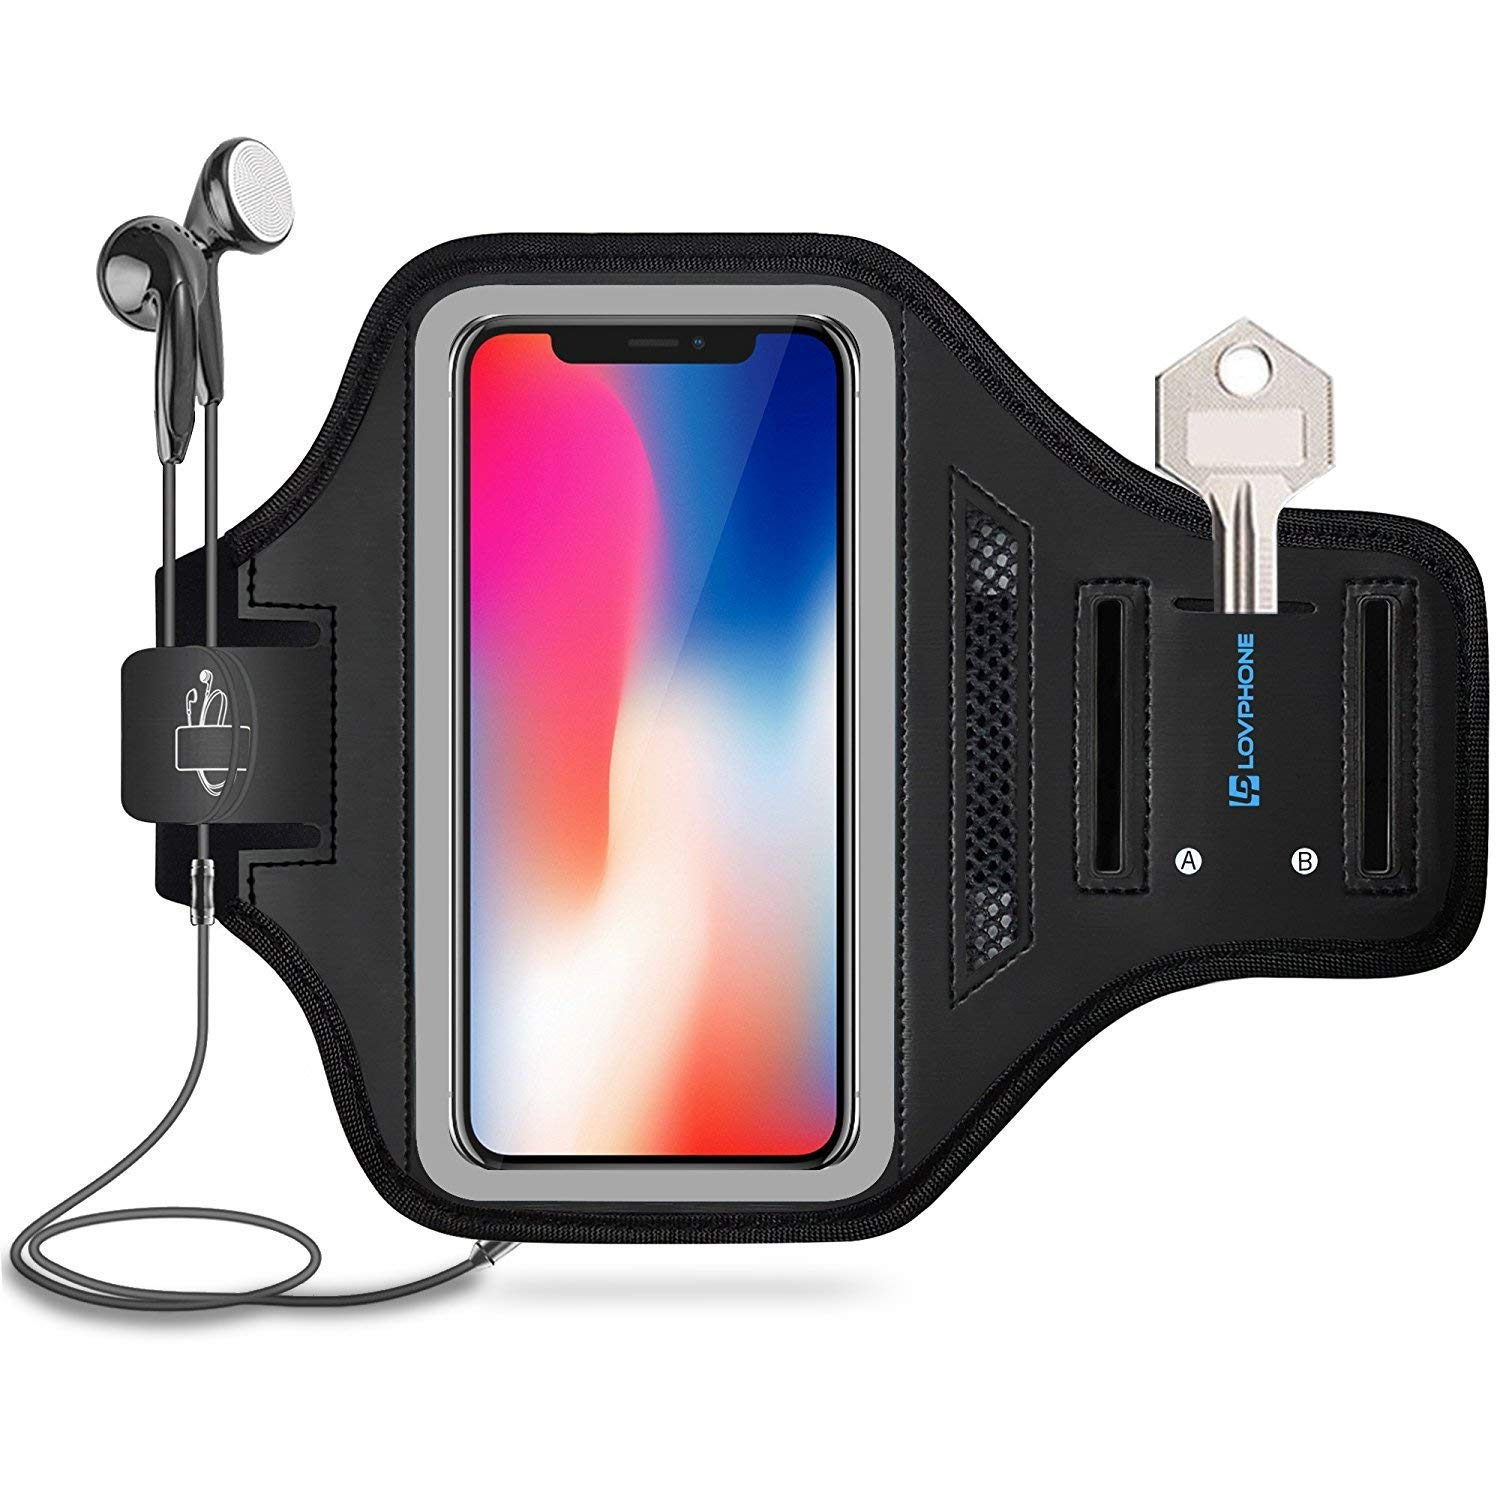 LOVPHONE Running Armband for iPhone X, Waterproof Sport Outdoor Gym Running Key Holder Card Slot Phone Case Bag Armband (Gray)